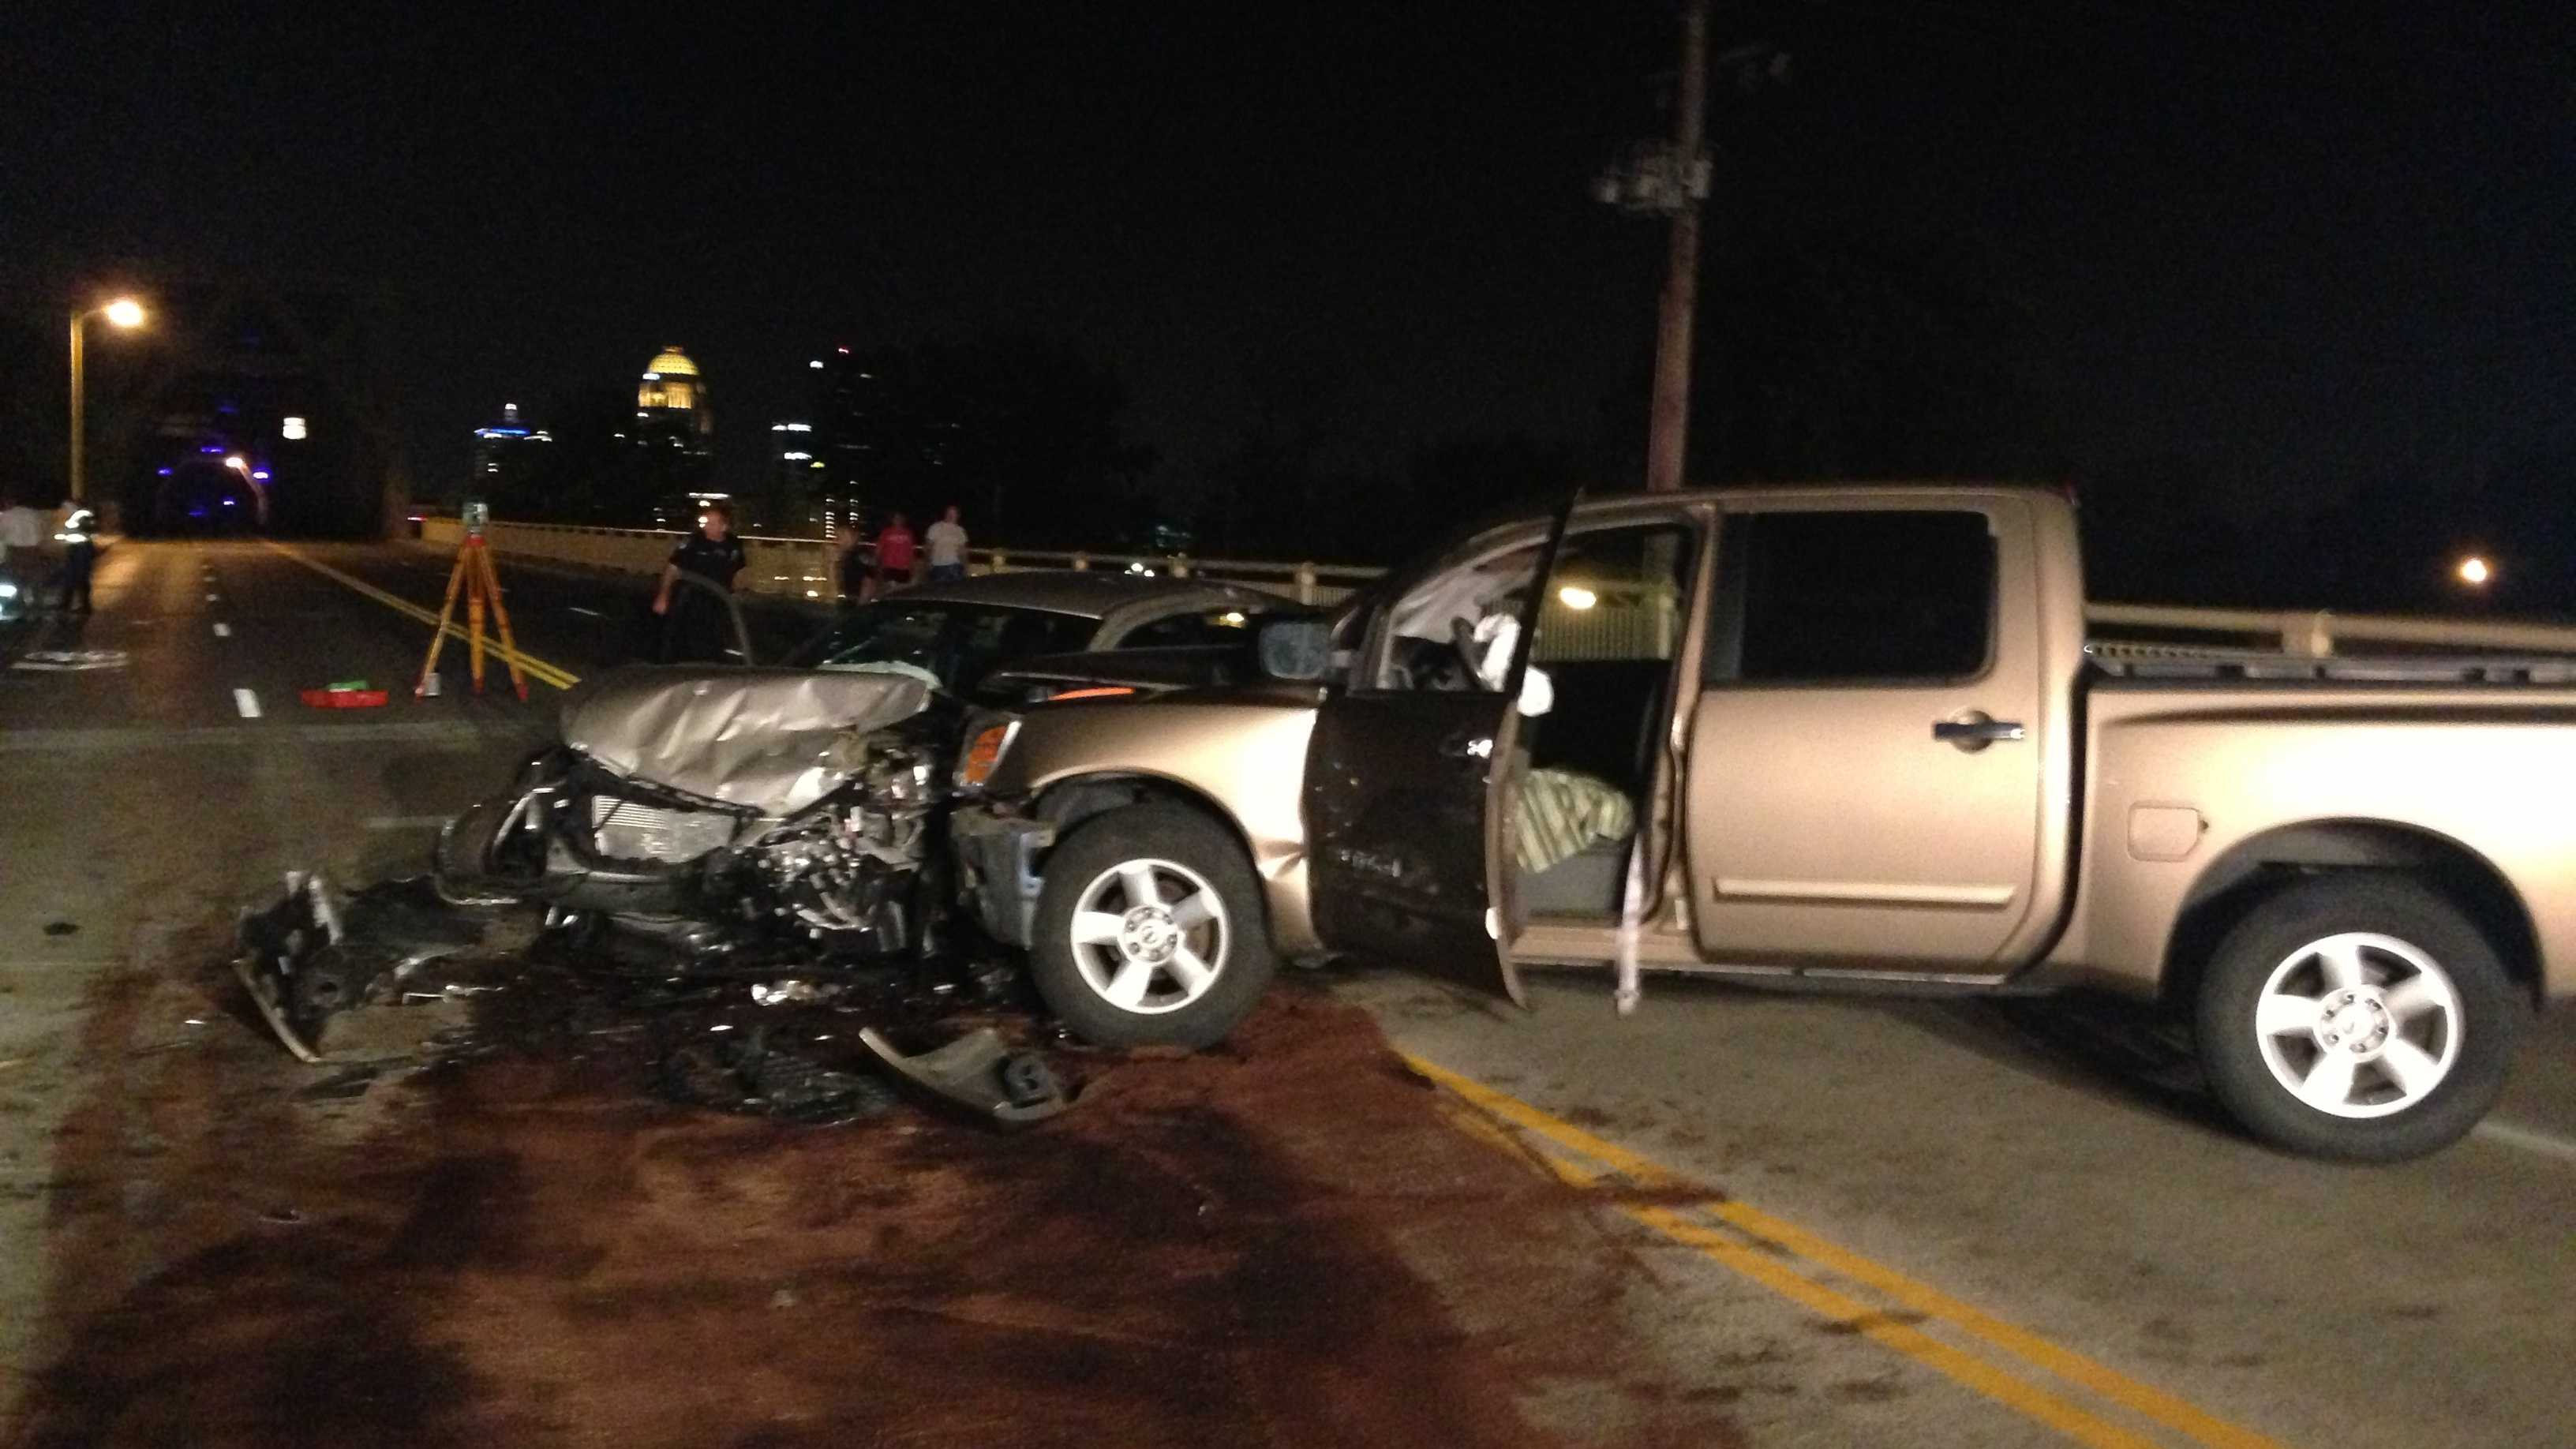 The Second Street Bridge is closed after a crash on the Indiana side.